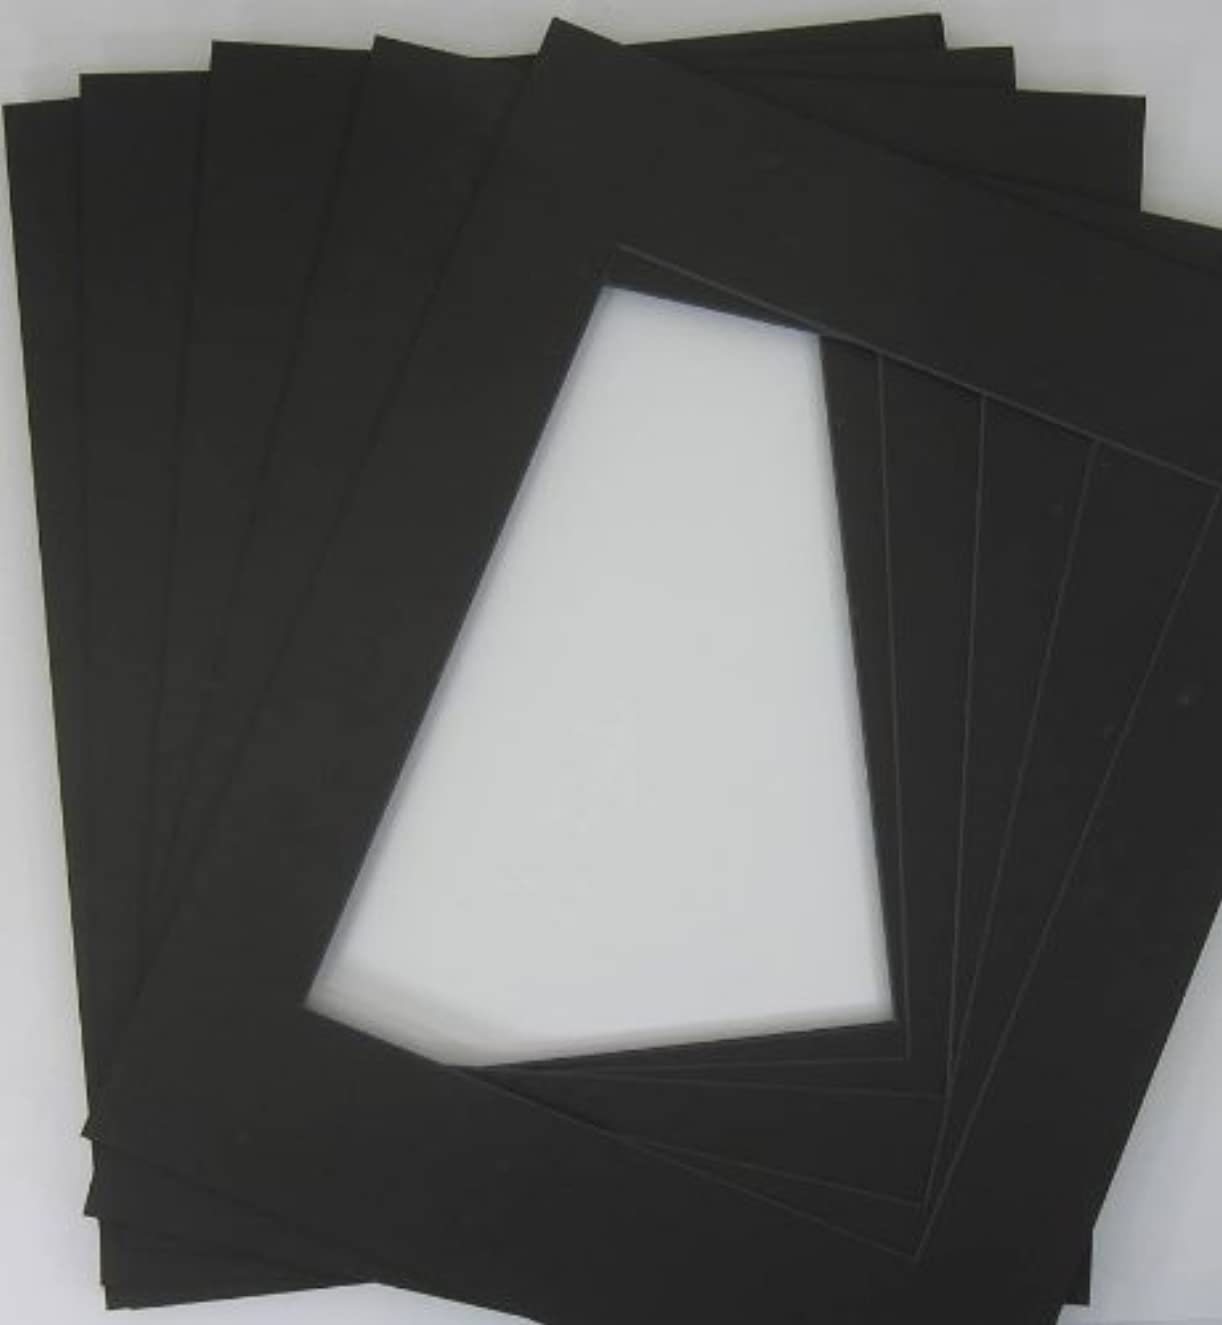 10 of 20x24 Black Pre-cut Acid-free BLACKCORE mat for 16x20 + back